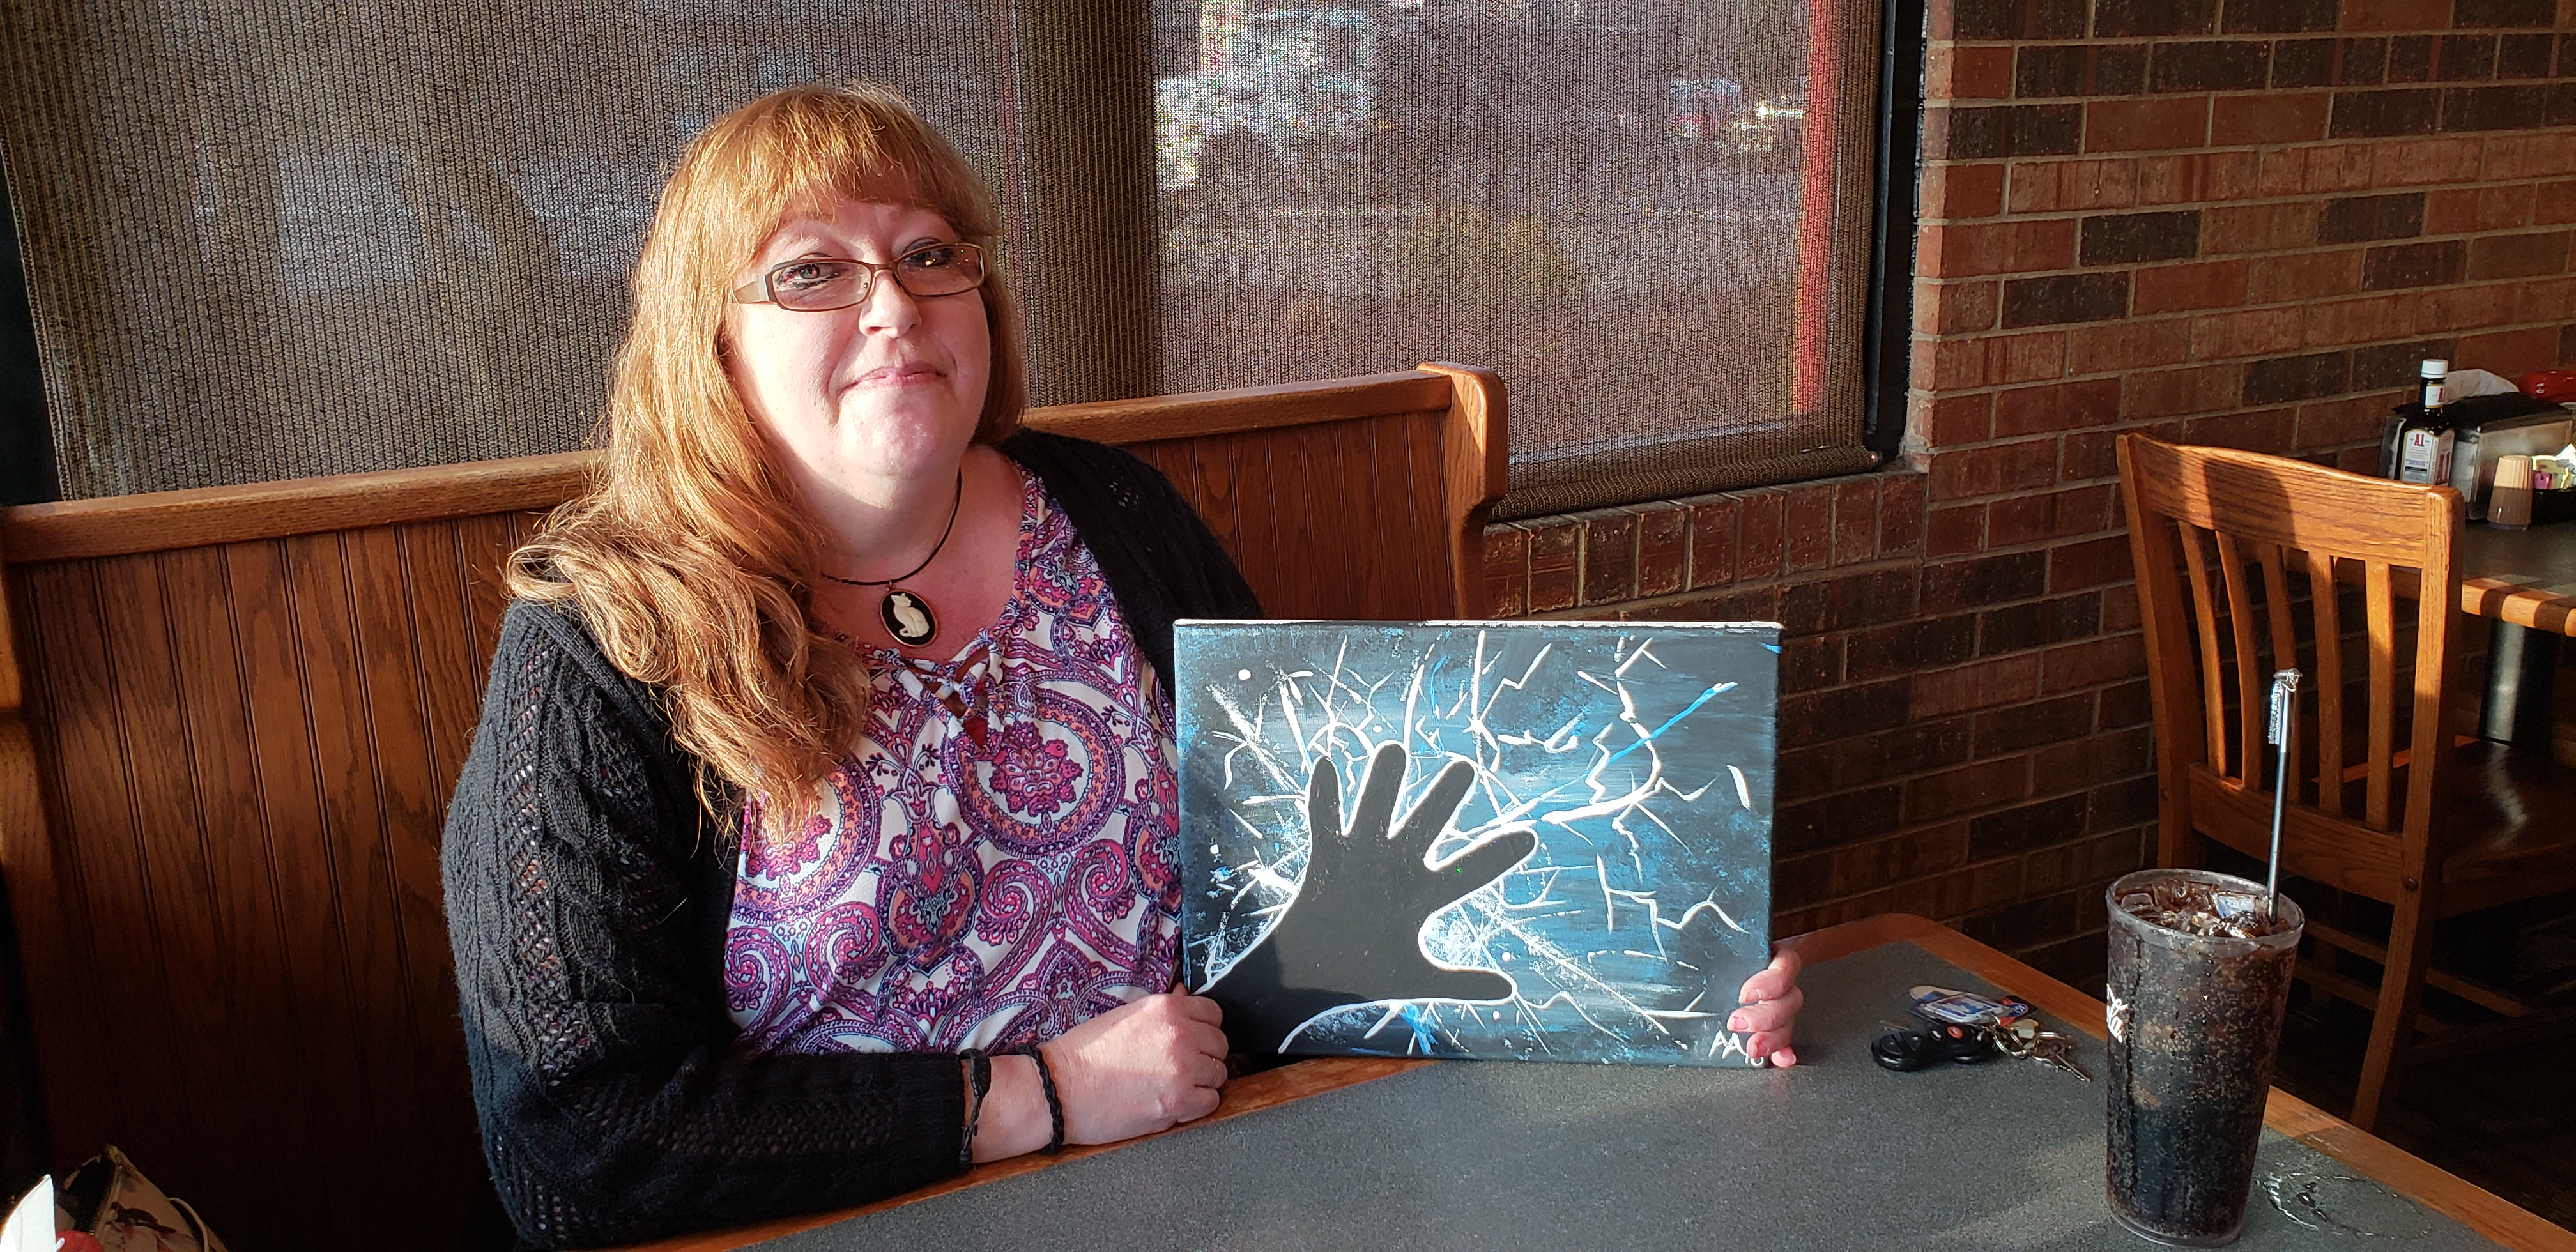 Peninsula patient Andee Anderson shows her first painting of a hand reaching out of the darkness.